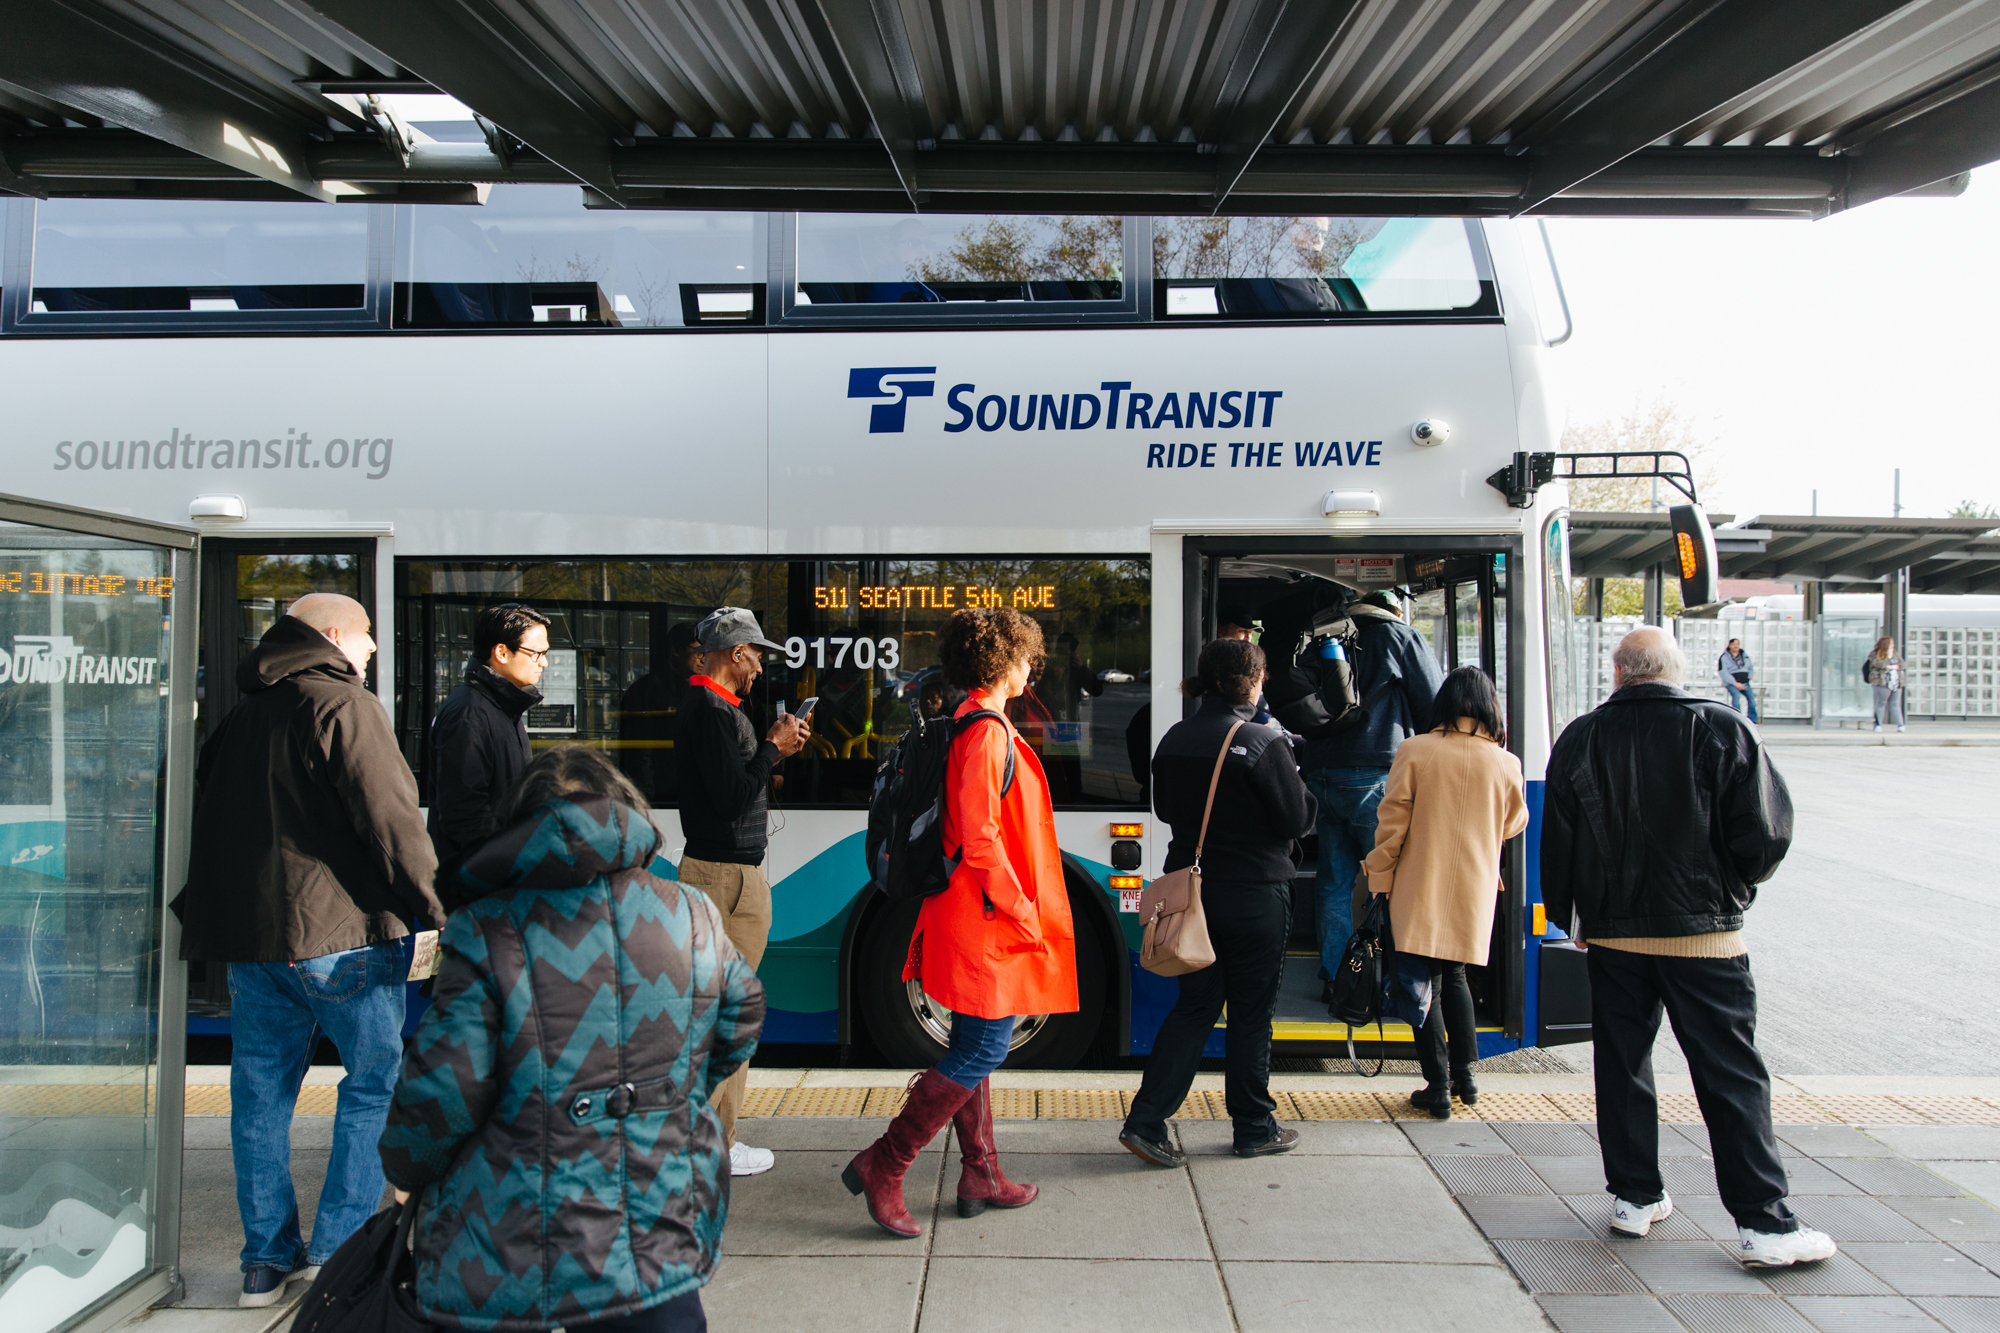 An image shows several people boarding a Sound Transit double-decker bus at a transit station.